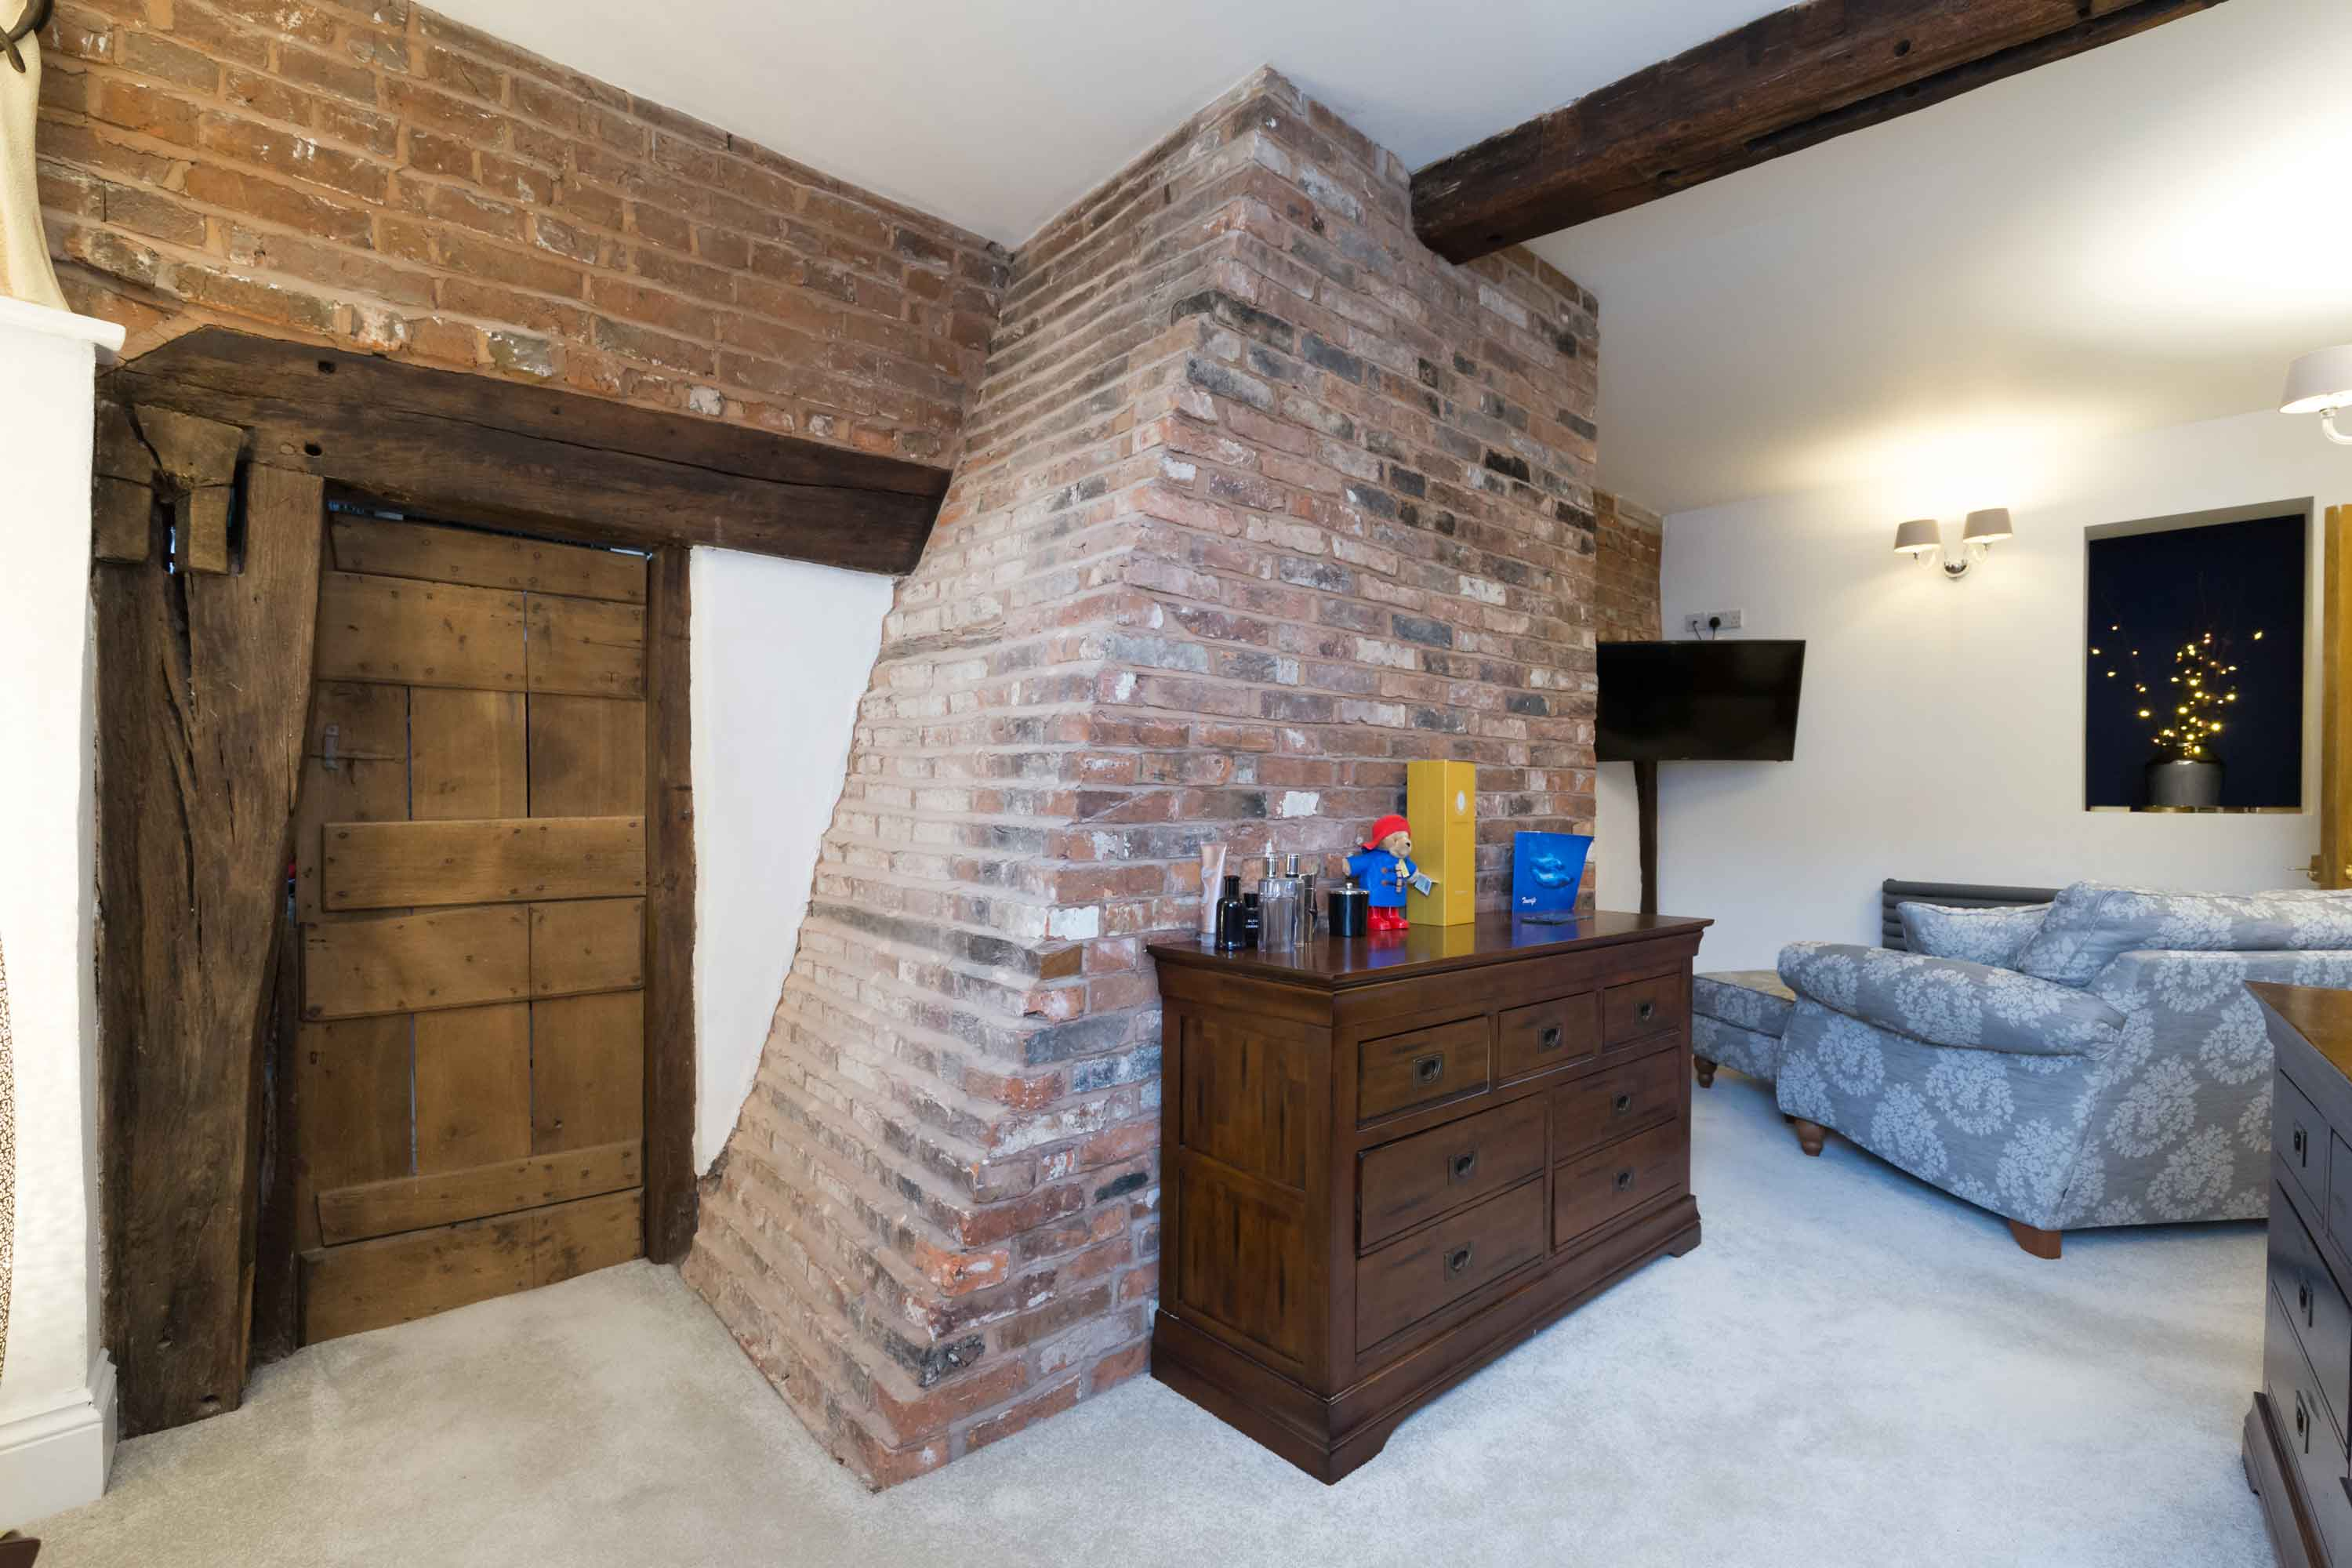 conservation bedroom chimney brickwork wood door